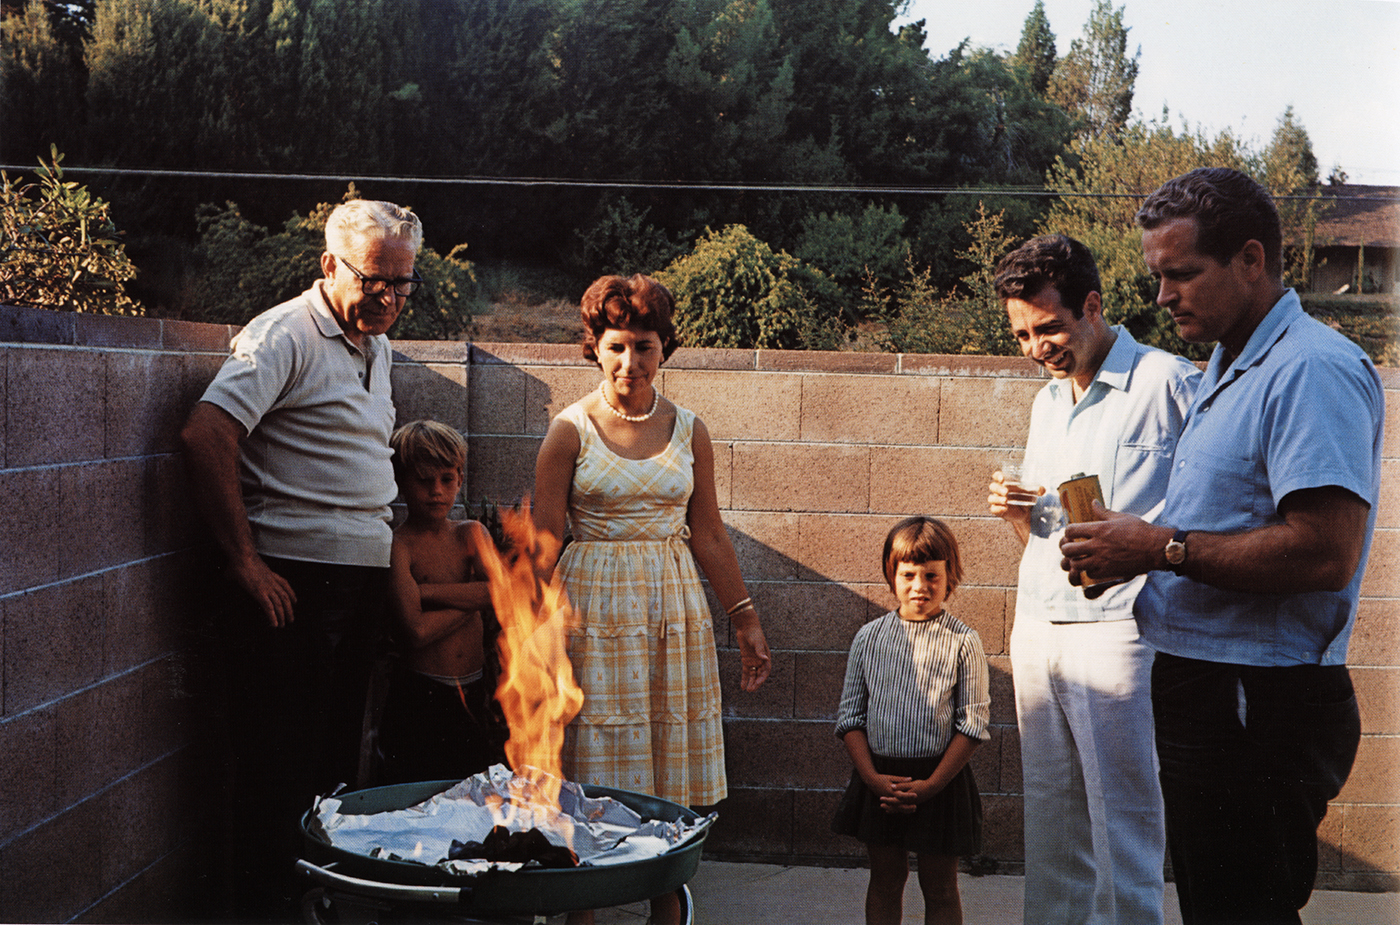 Guy Stricherz  Americans in Kodachrome 1945-1965   Flaming Barbeque, Tarzana, California,  1965  Photographer: Andrea Katres  16 x 20 inches Dye Transfer Print